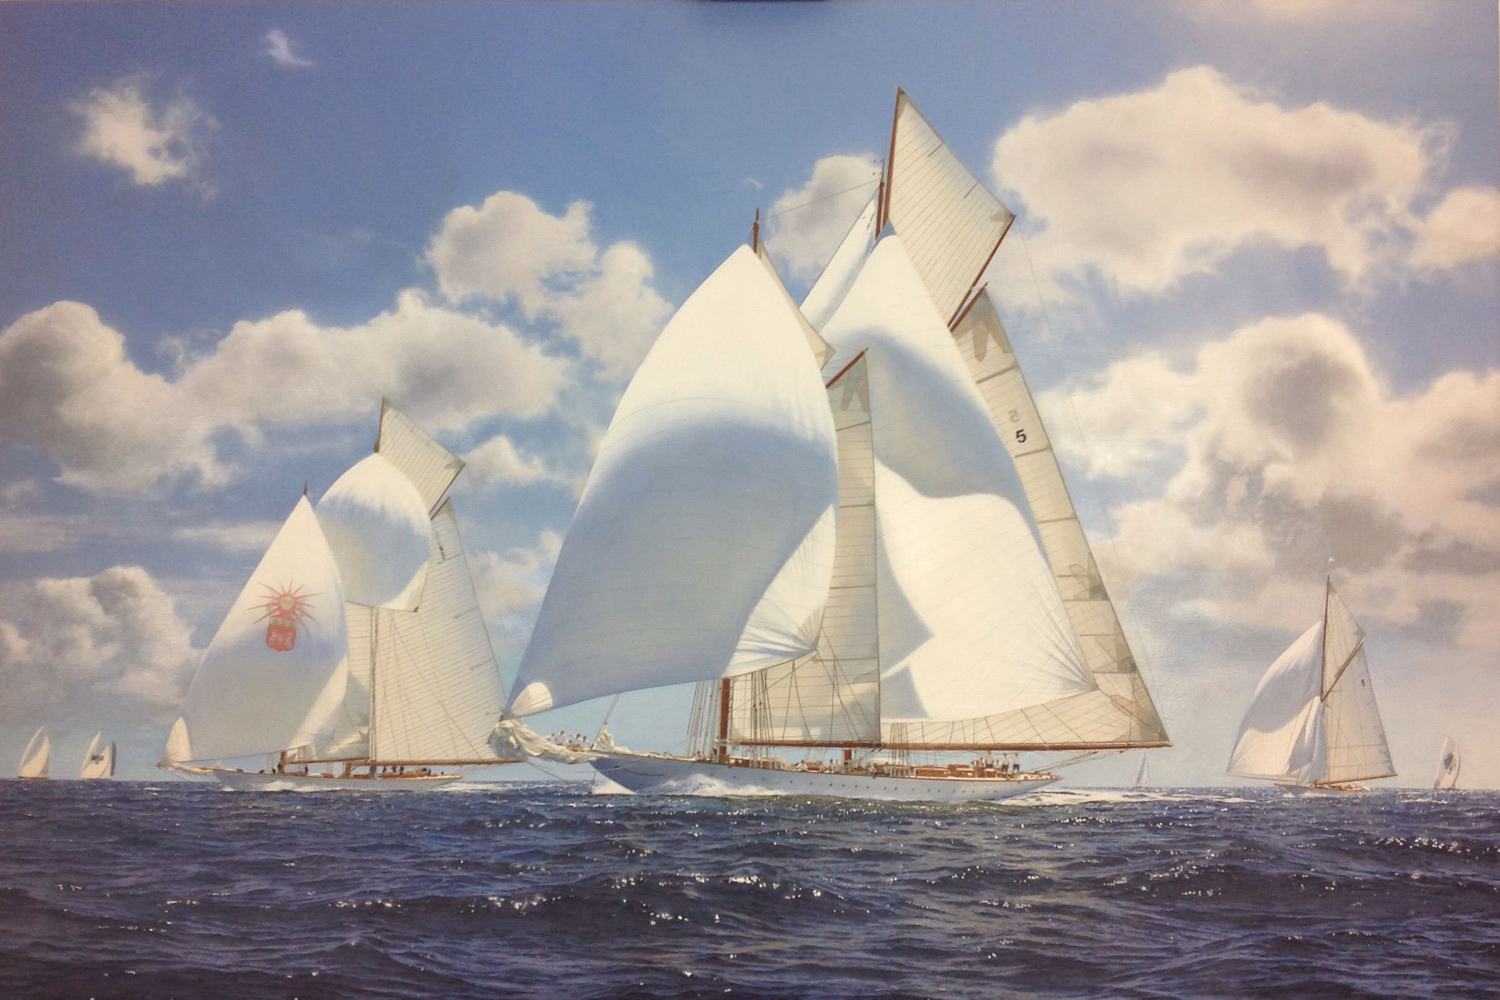 The Herreshoff Sisters, Elenora and Elena